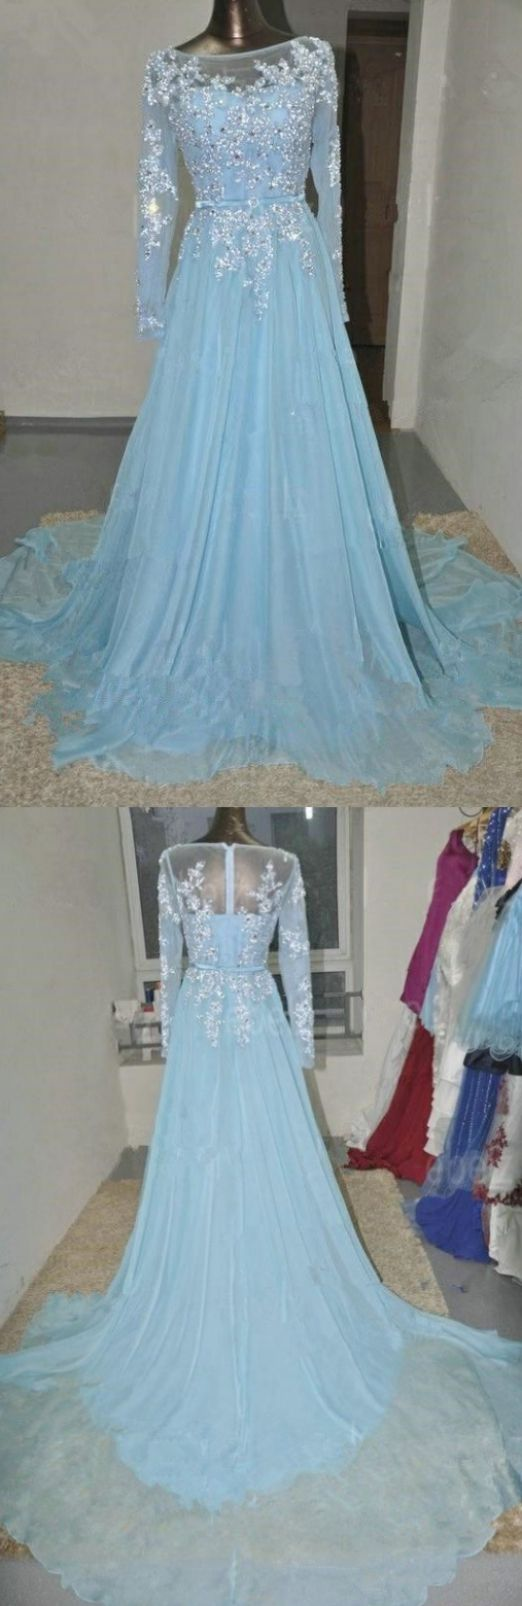 it likes on the dress from queen elsa from the frozen movie